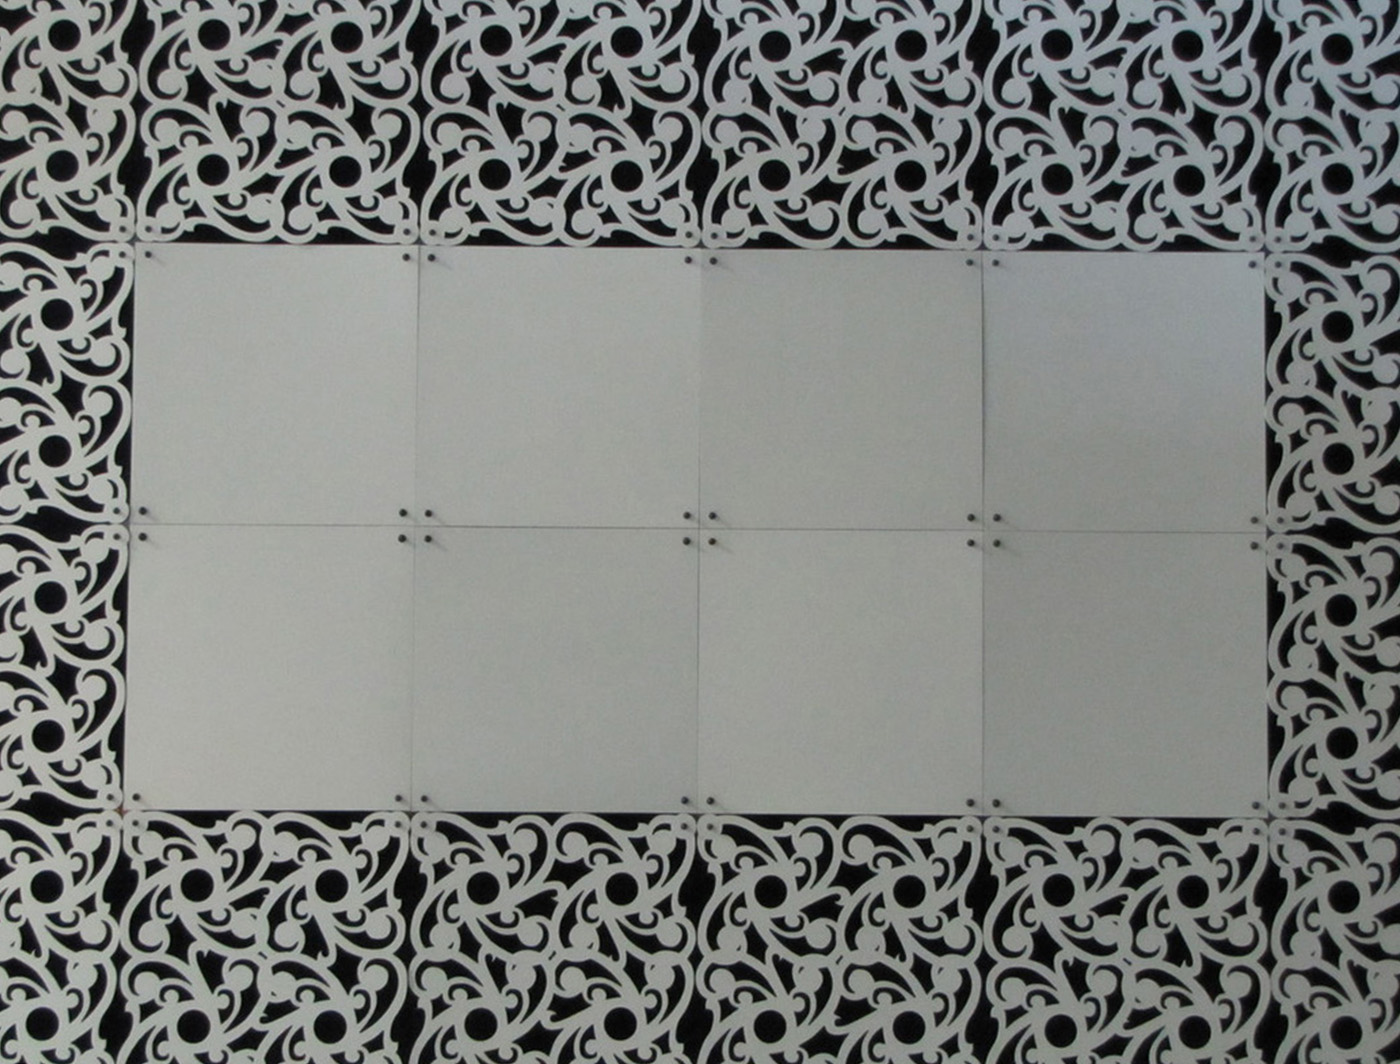 PROPANE PANELS SURROUNDED BY PIPPA PANELS